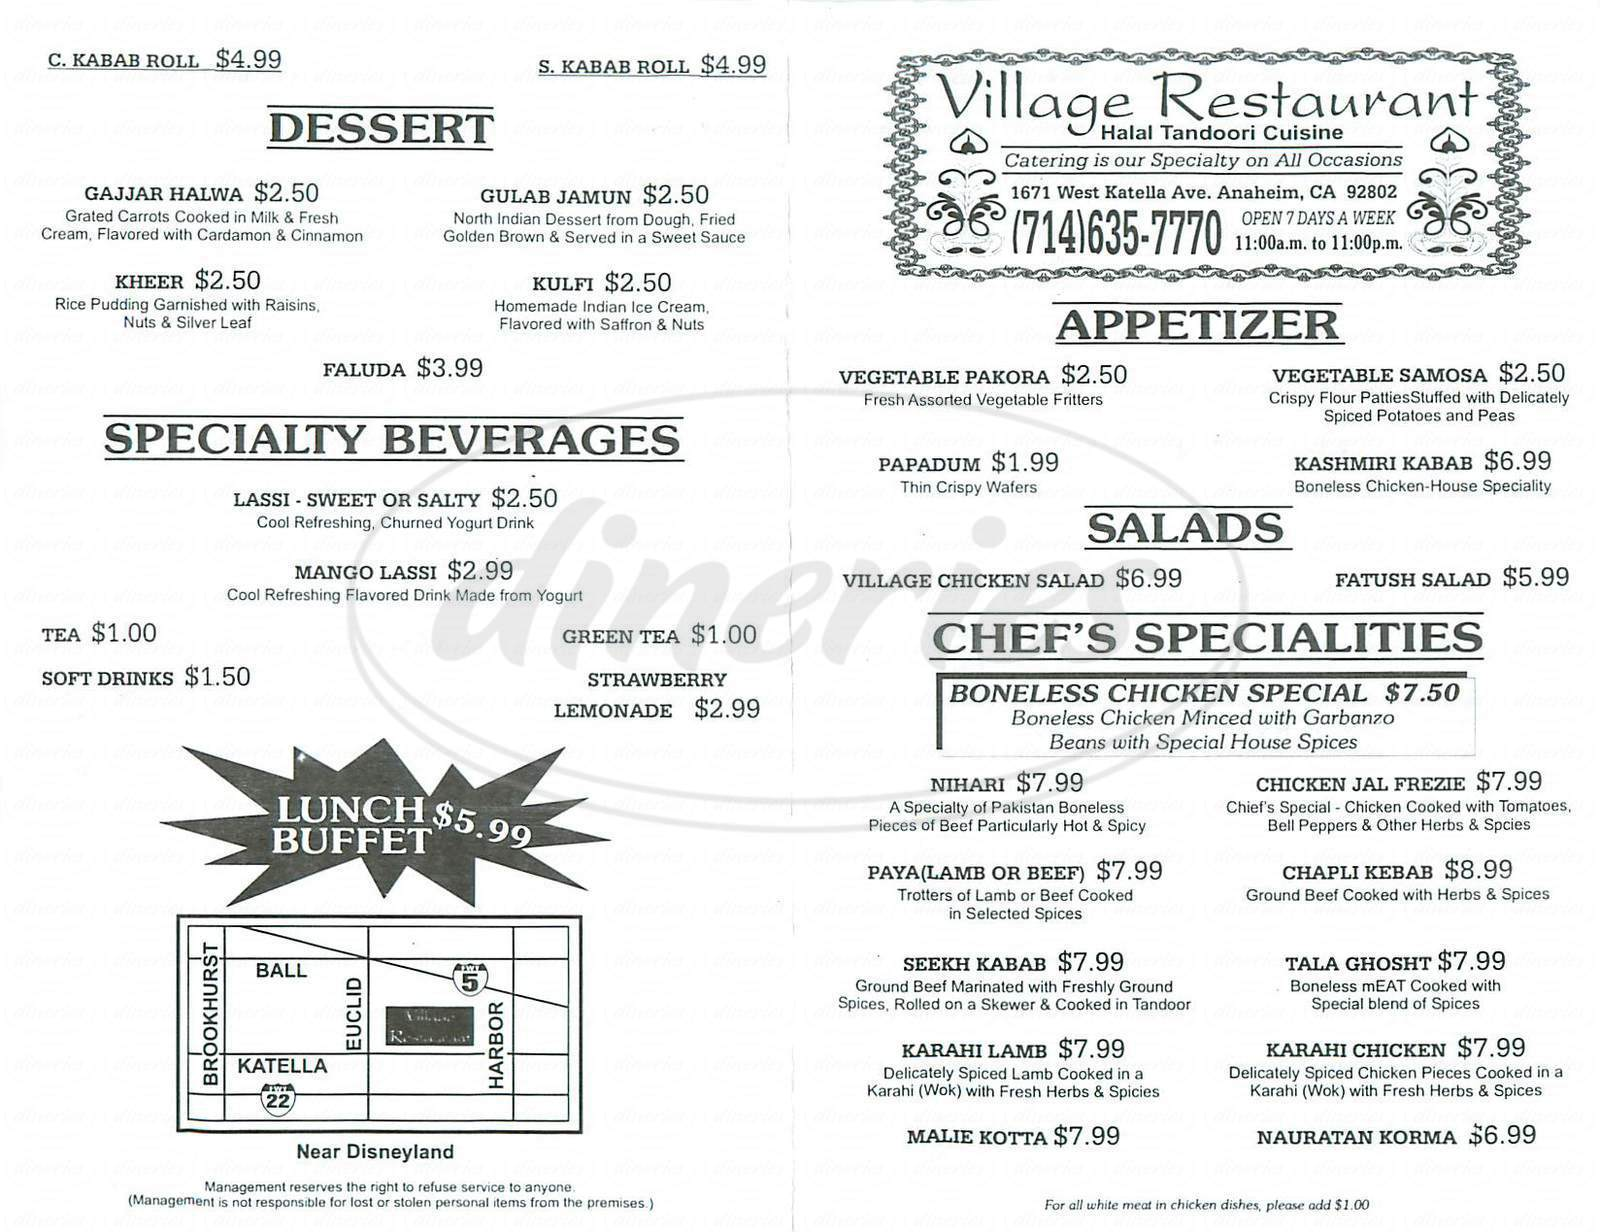 menu for Village Restaurant